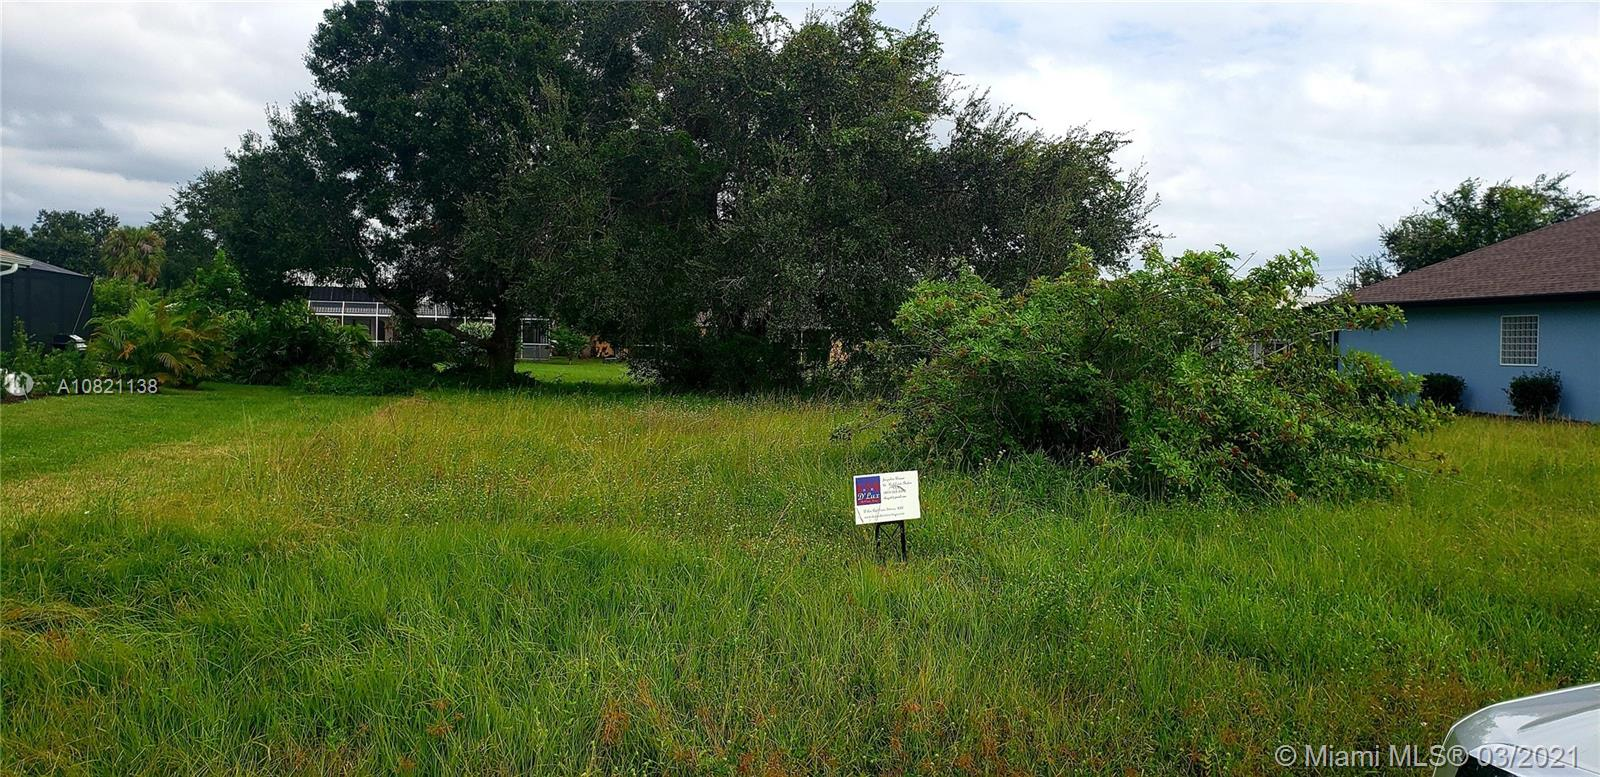 Opportunity to develop your custom home in Punta Gorda!+/- 10,000 SqFt land ready for you dreamed house!Great location, near all arteries.